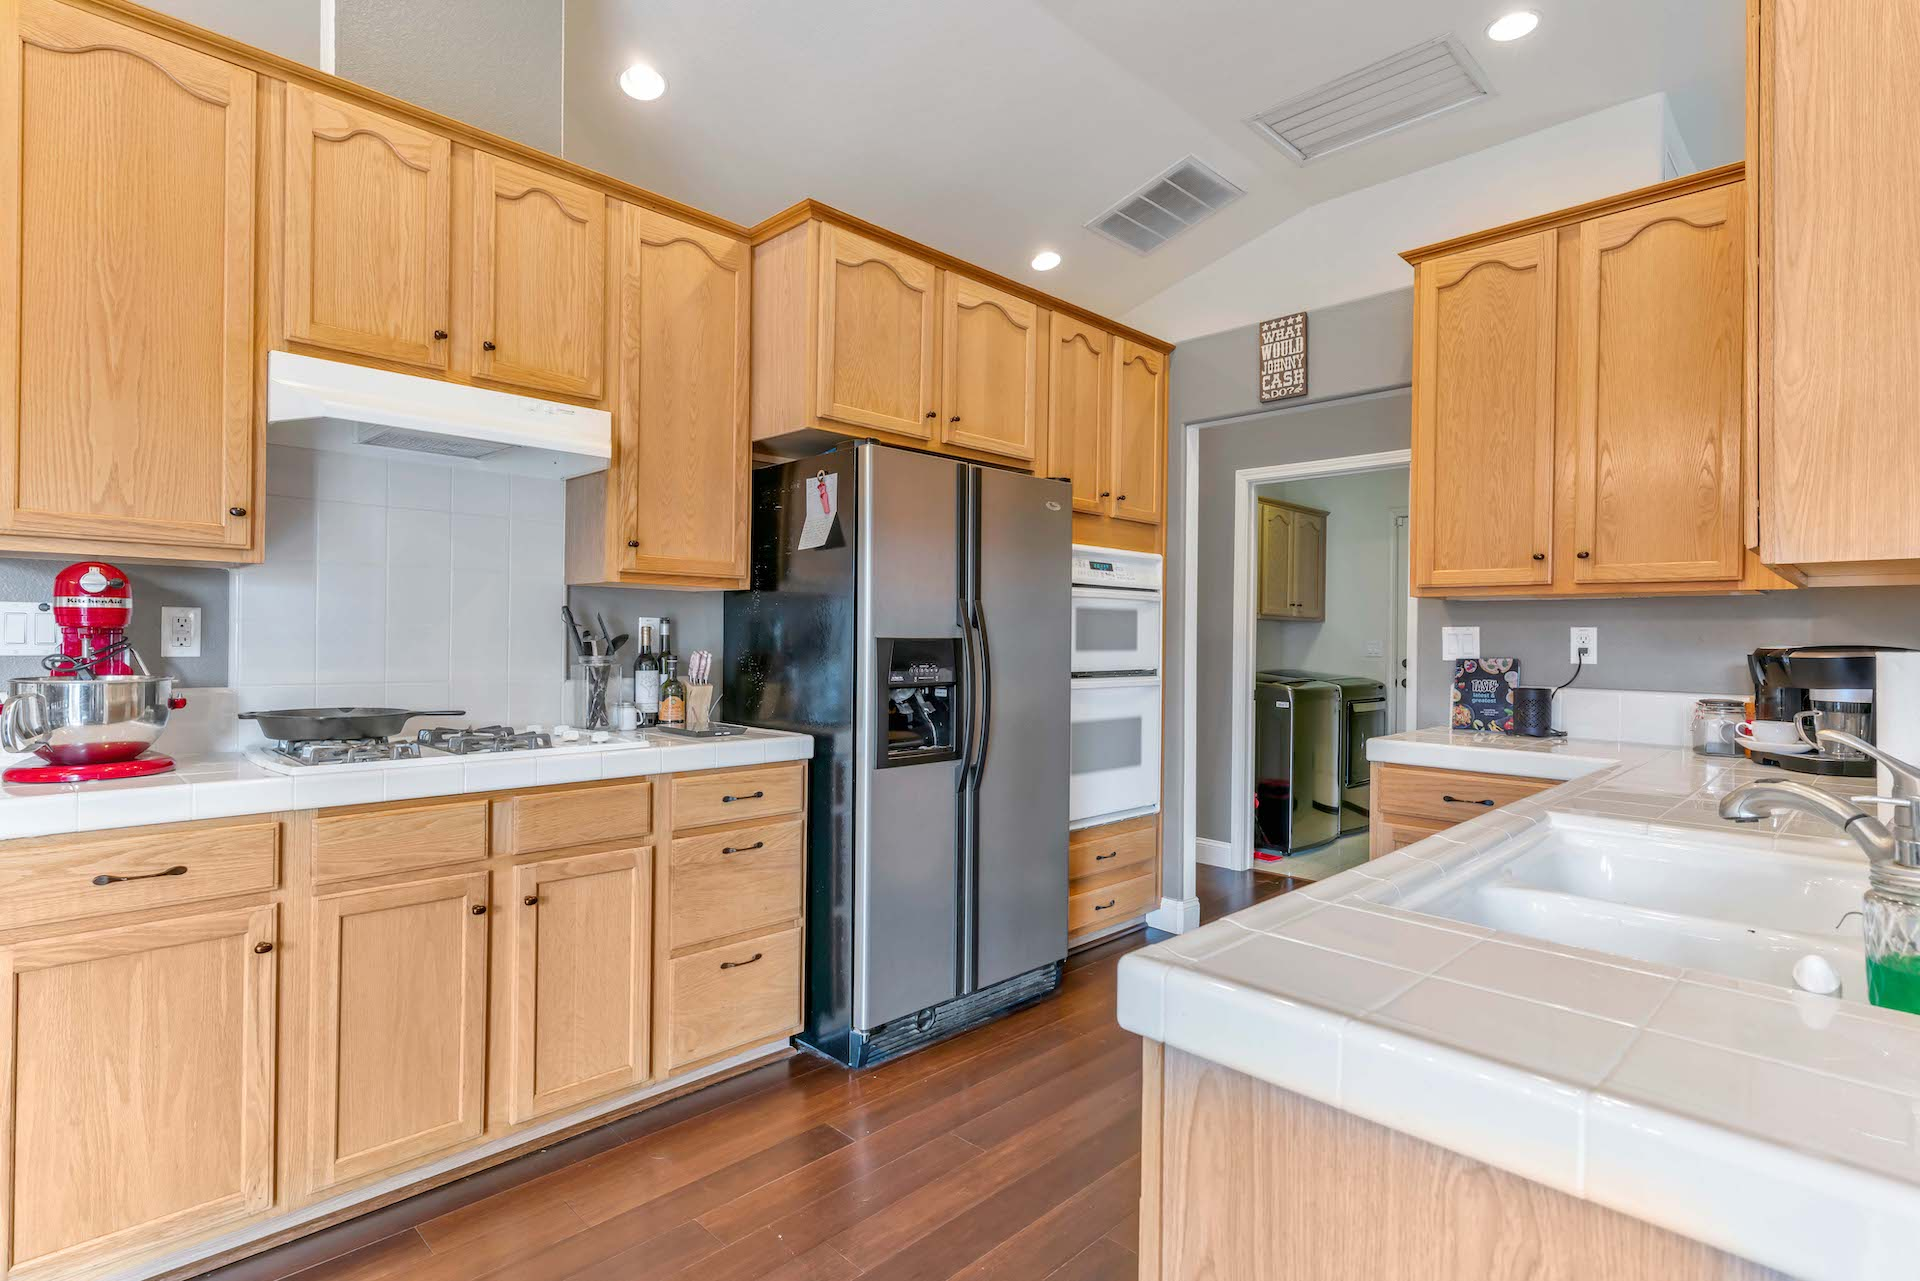 157 Clydesdale Way, Roseville, Ca | Kitchen | Roseville Real Estate Agent